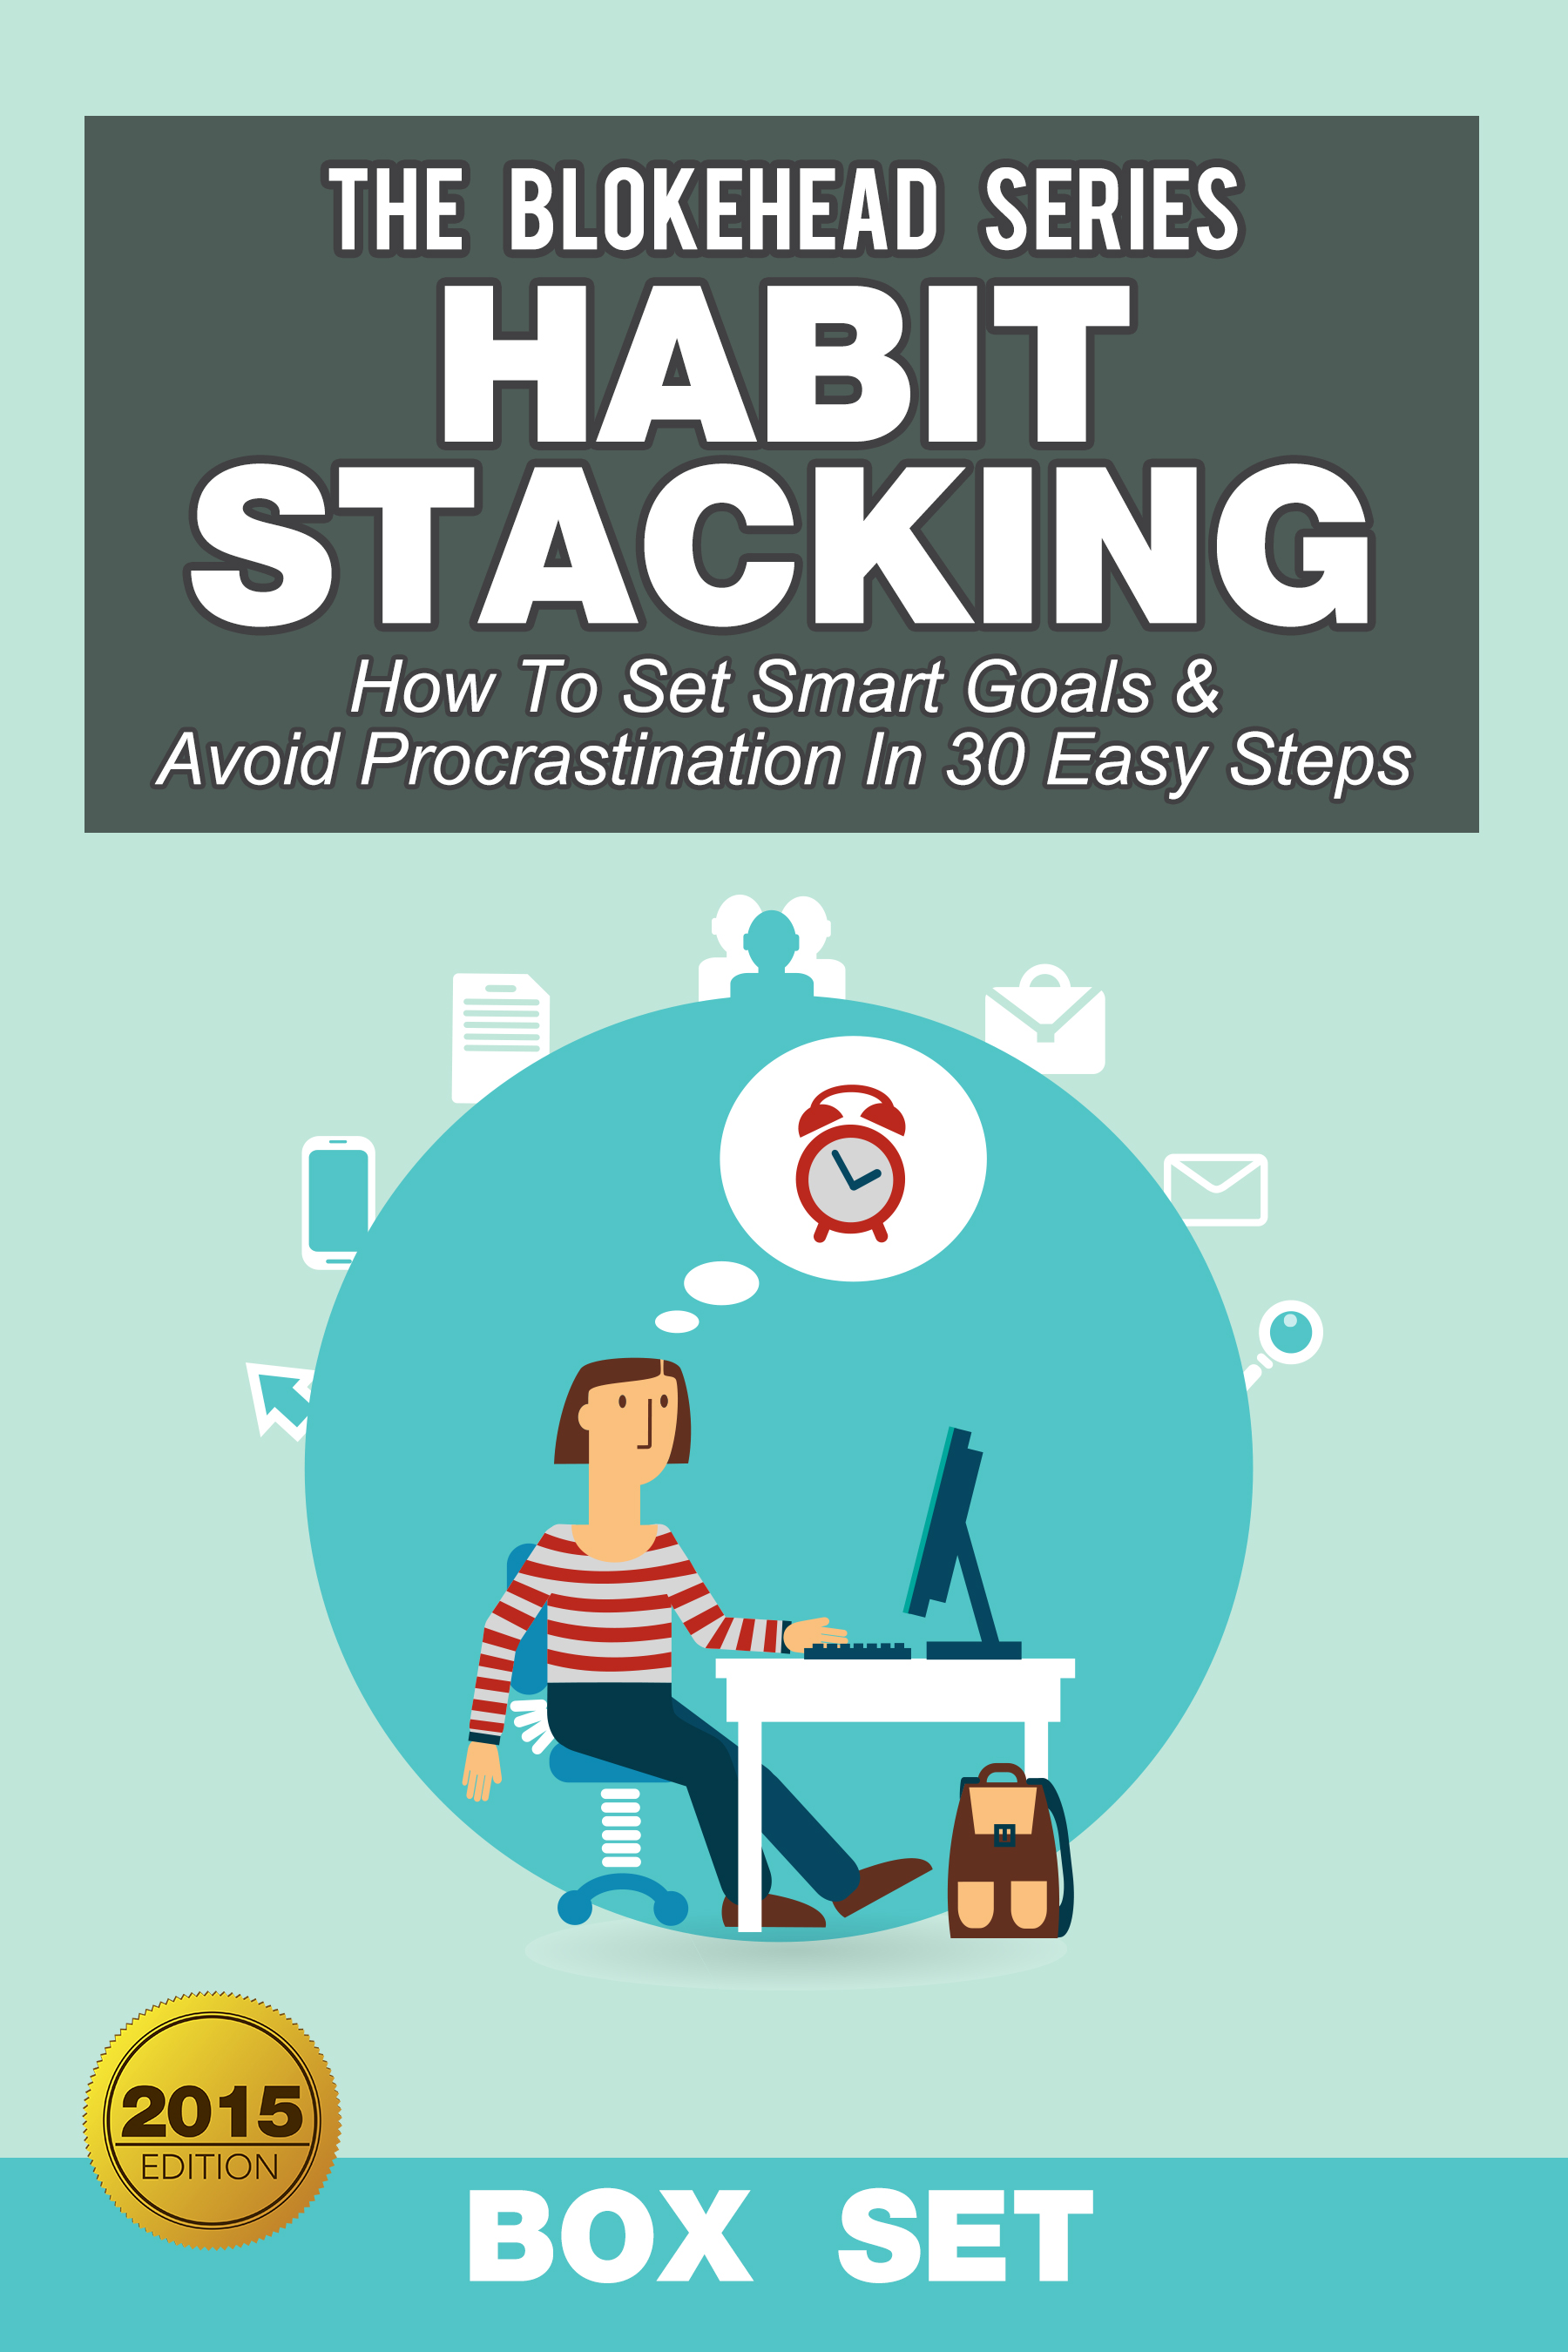 Habit stacking: how to set smart goals & avoid procrastination in 30 easy steps (box set)